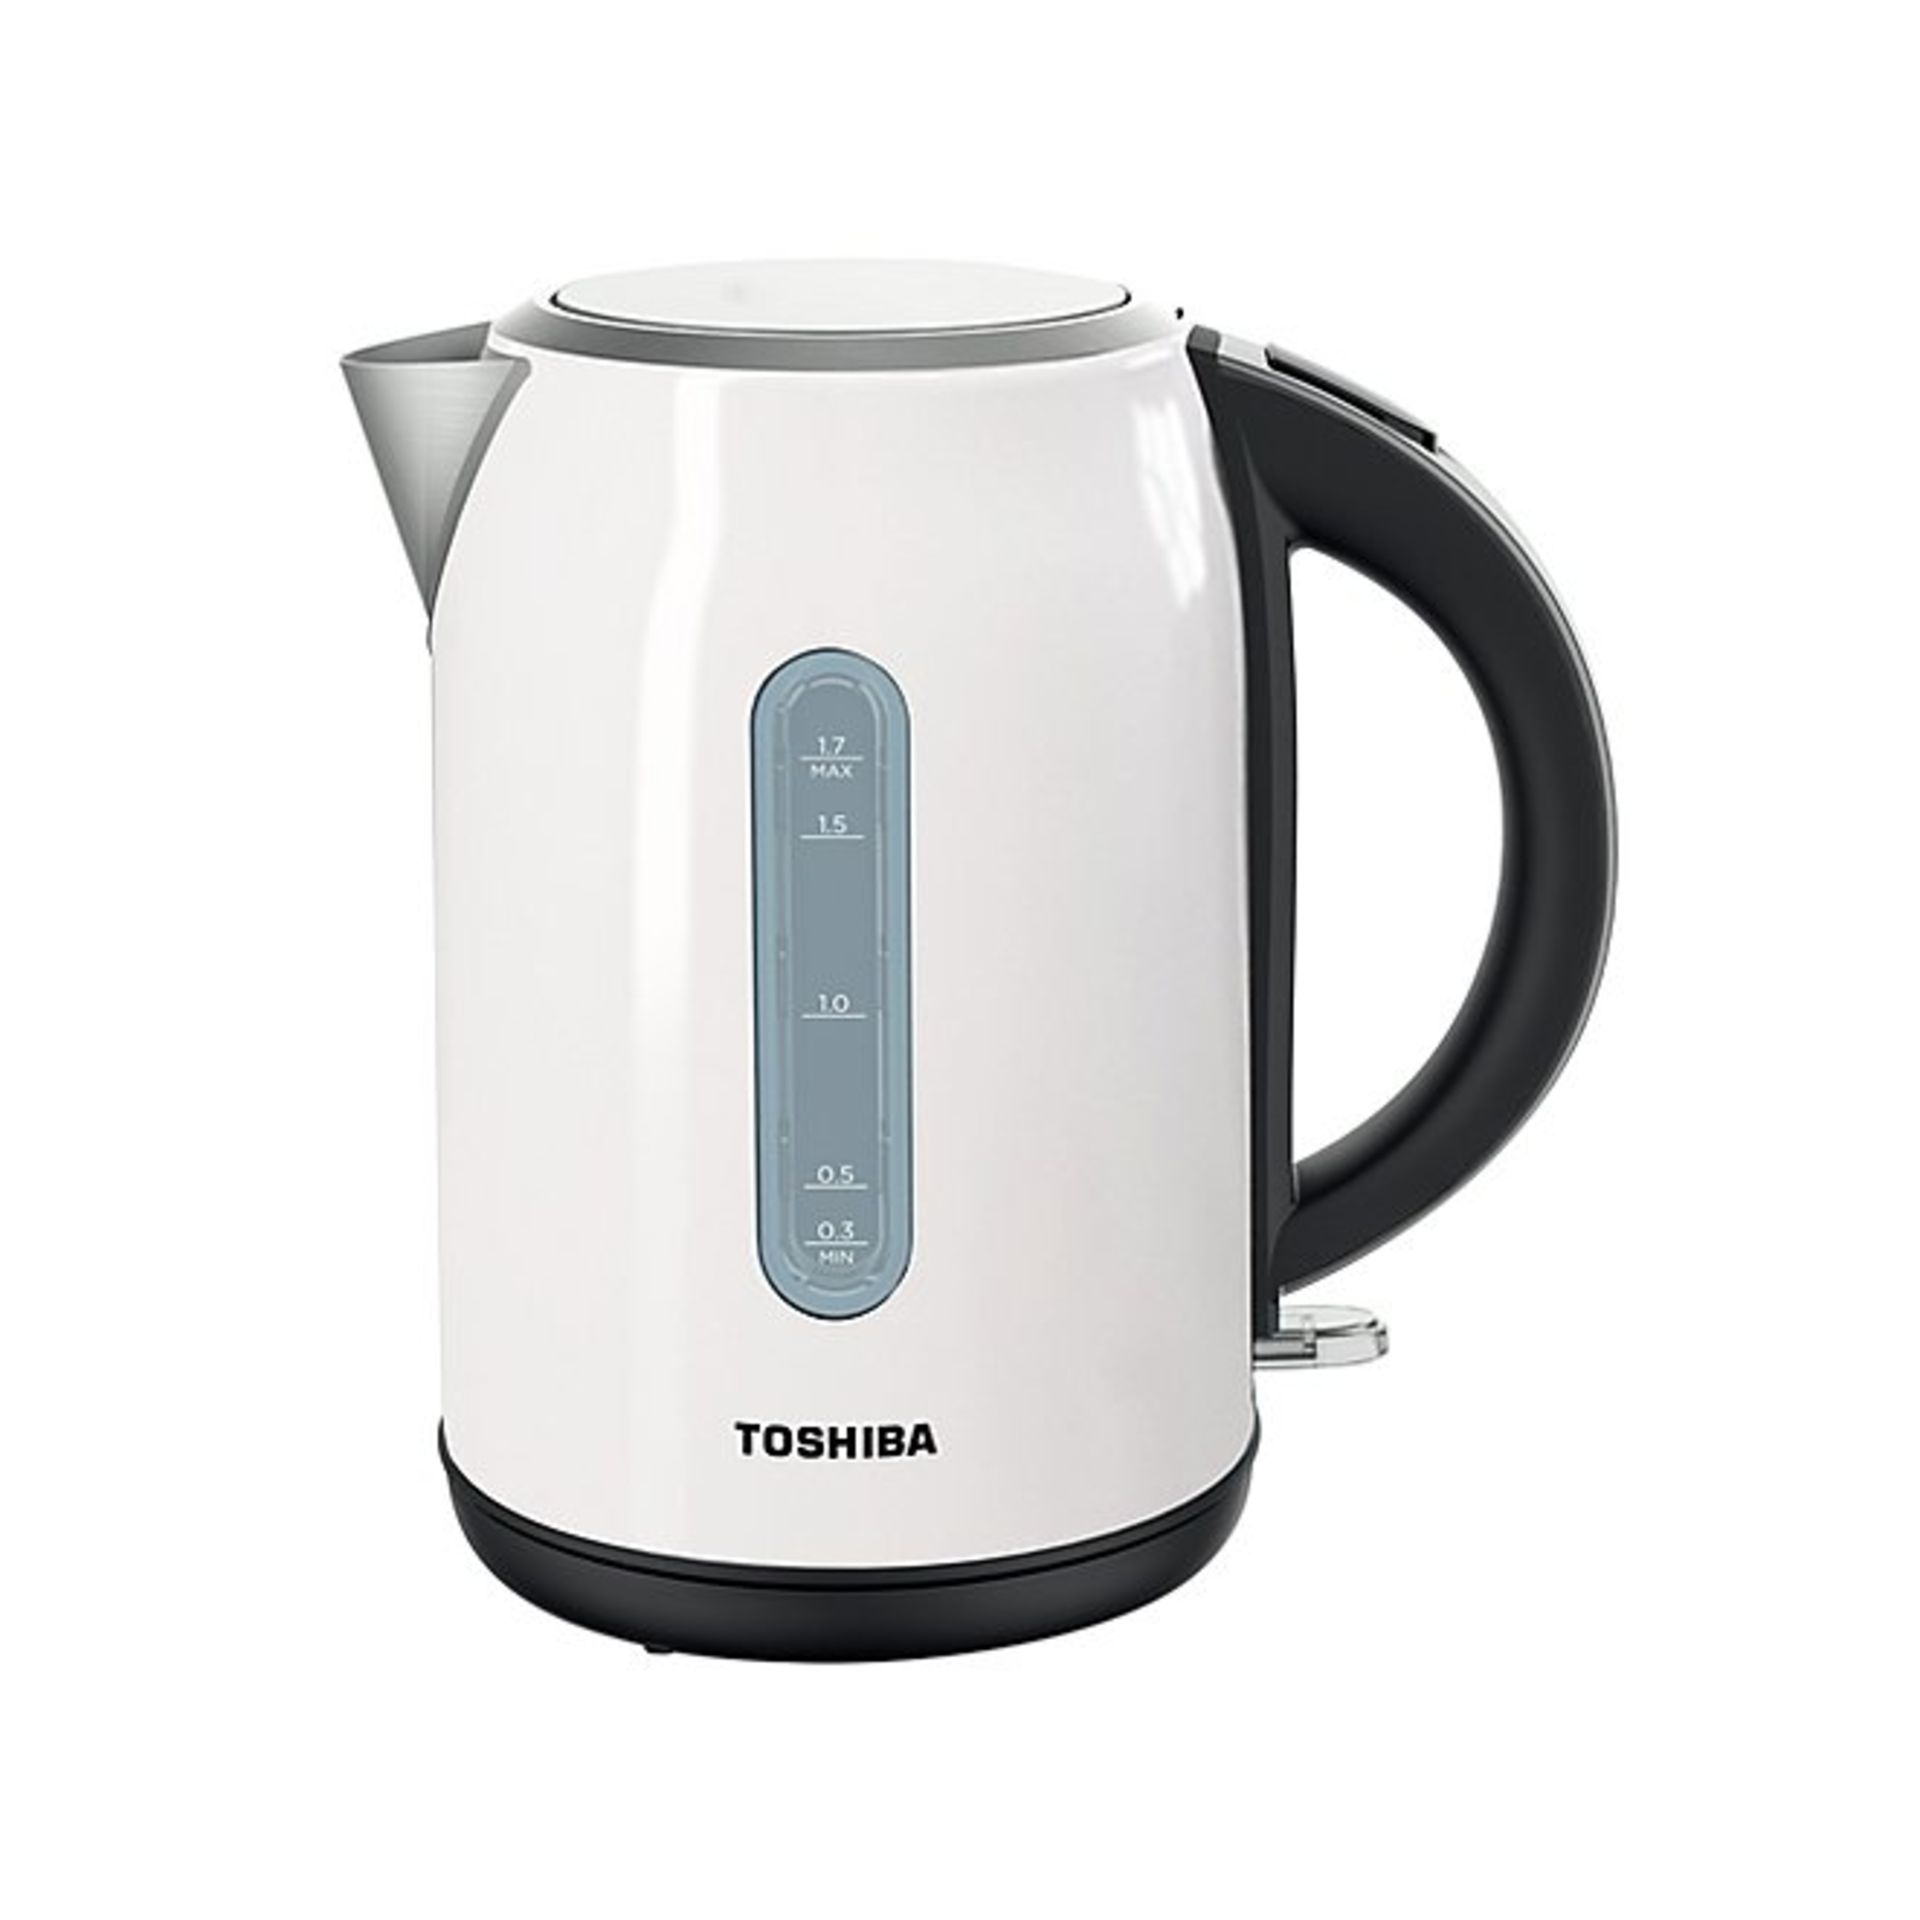 (15) 4x Items, 1x Toshiba Rapid Boiling Electric Kettle Cream. 1x Toshiba Rapid Boiling Electric Ke - Image 2 of 12